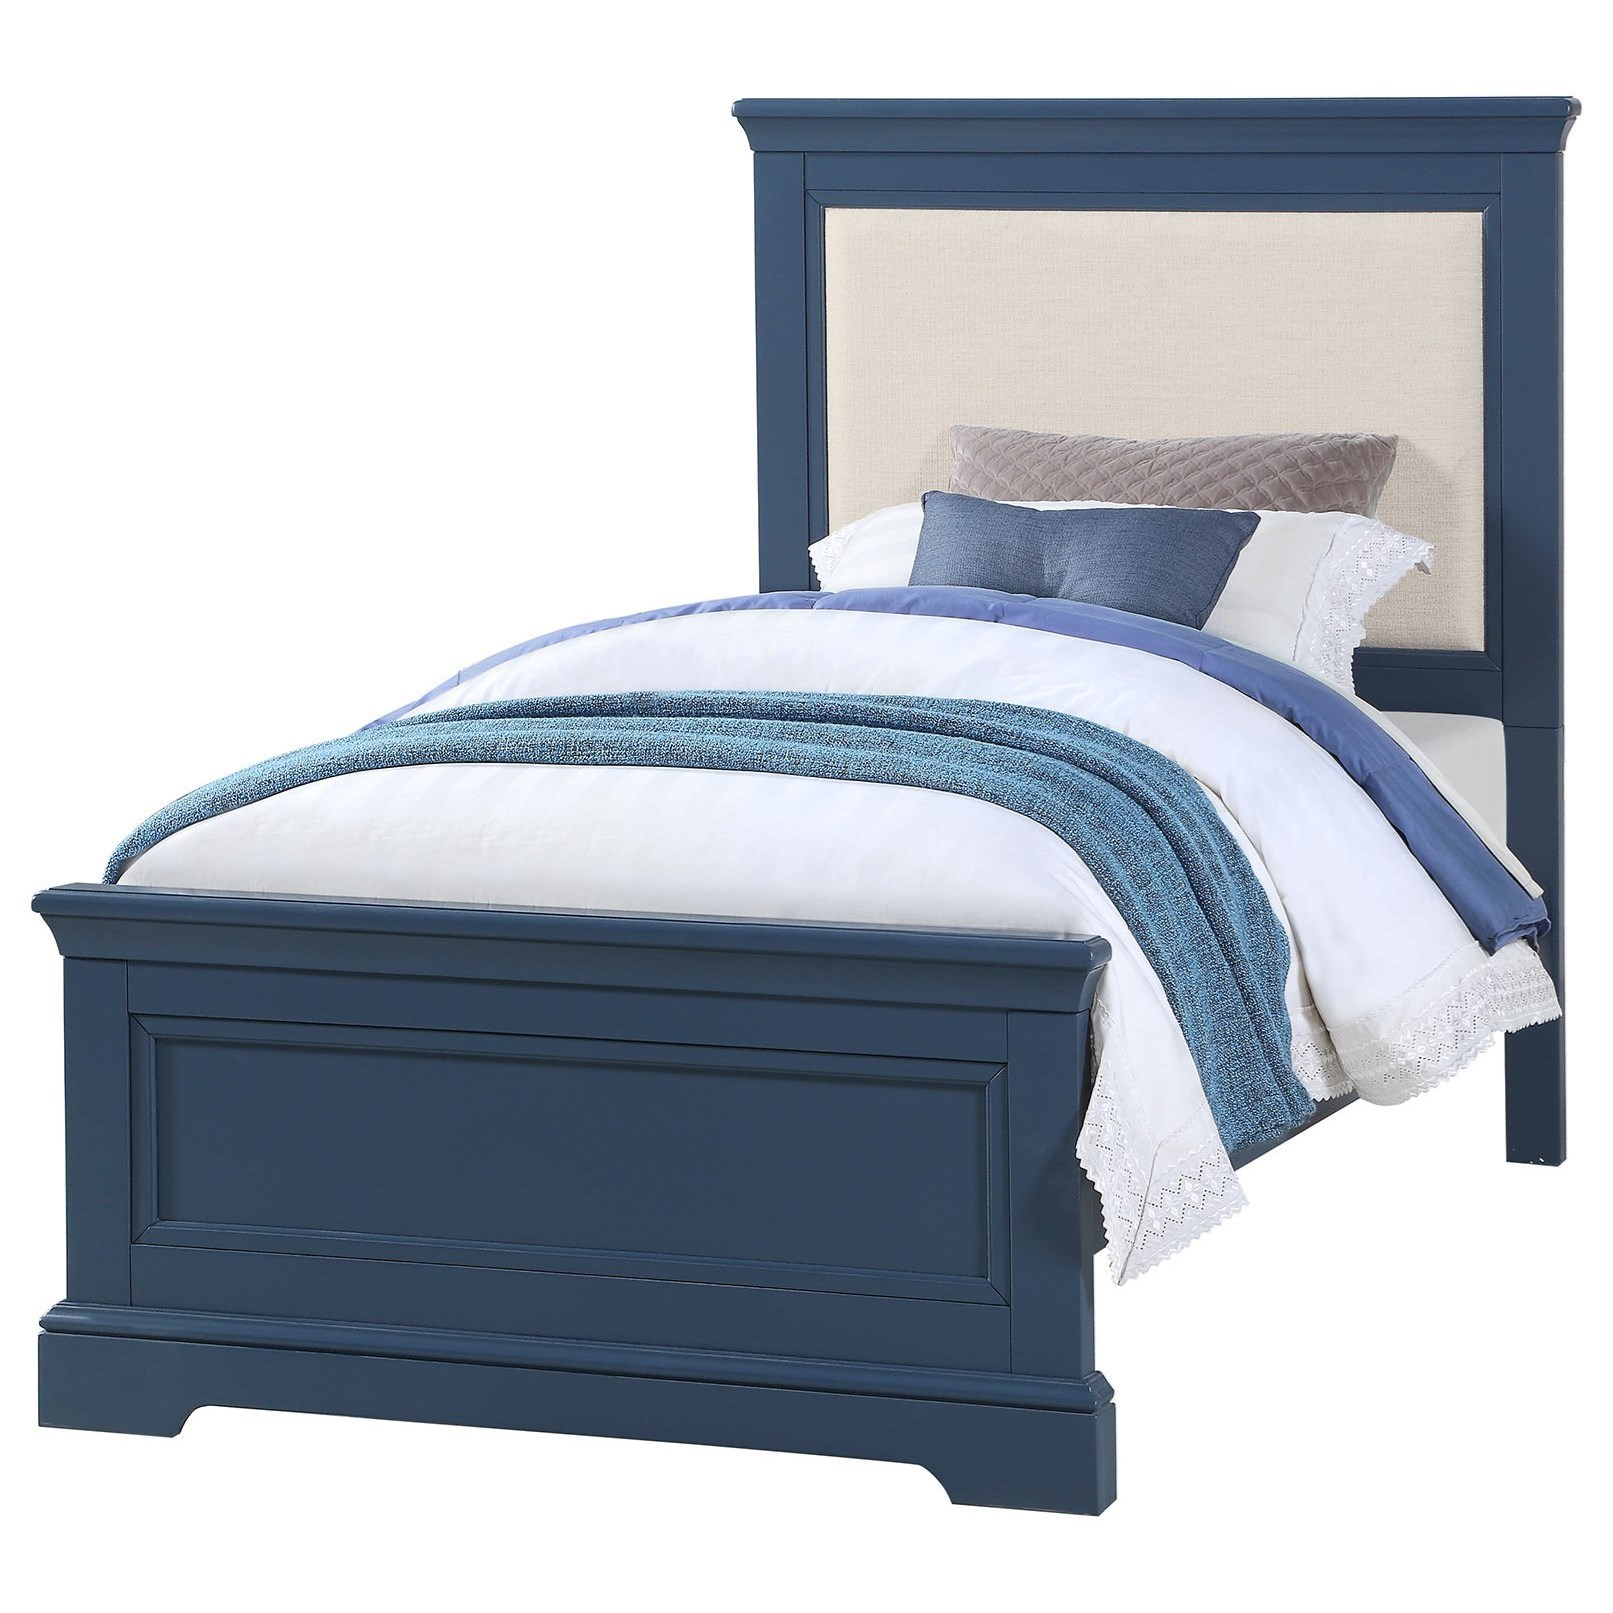 Tamarack Twin Upholstered Bed by Winners Only at Crowley Furniture & Mattress